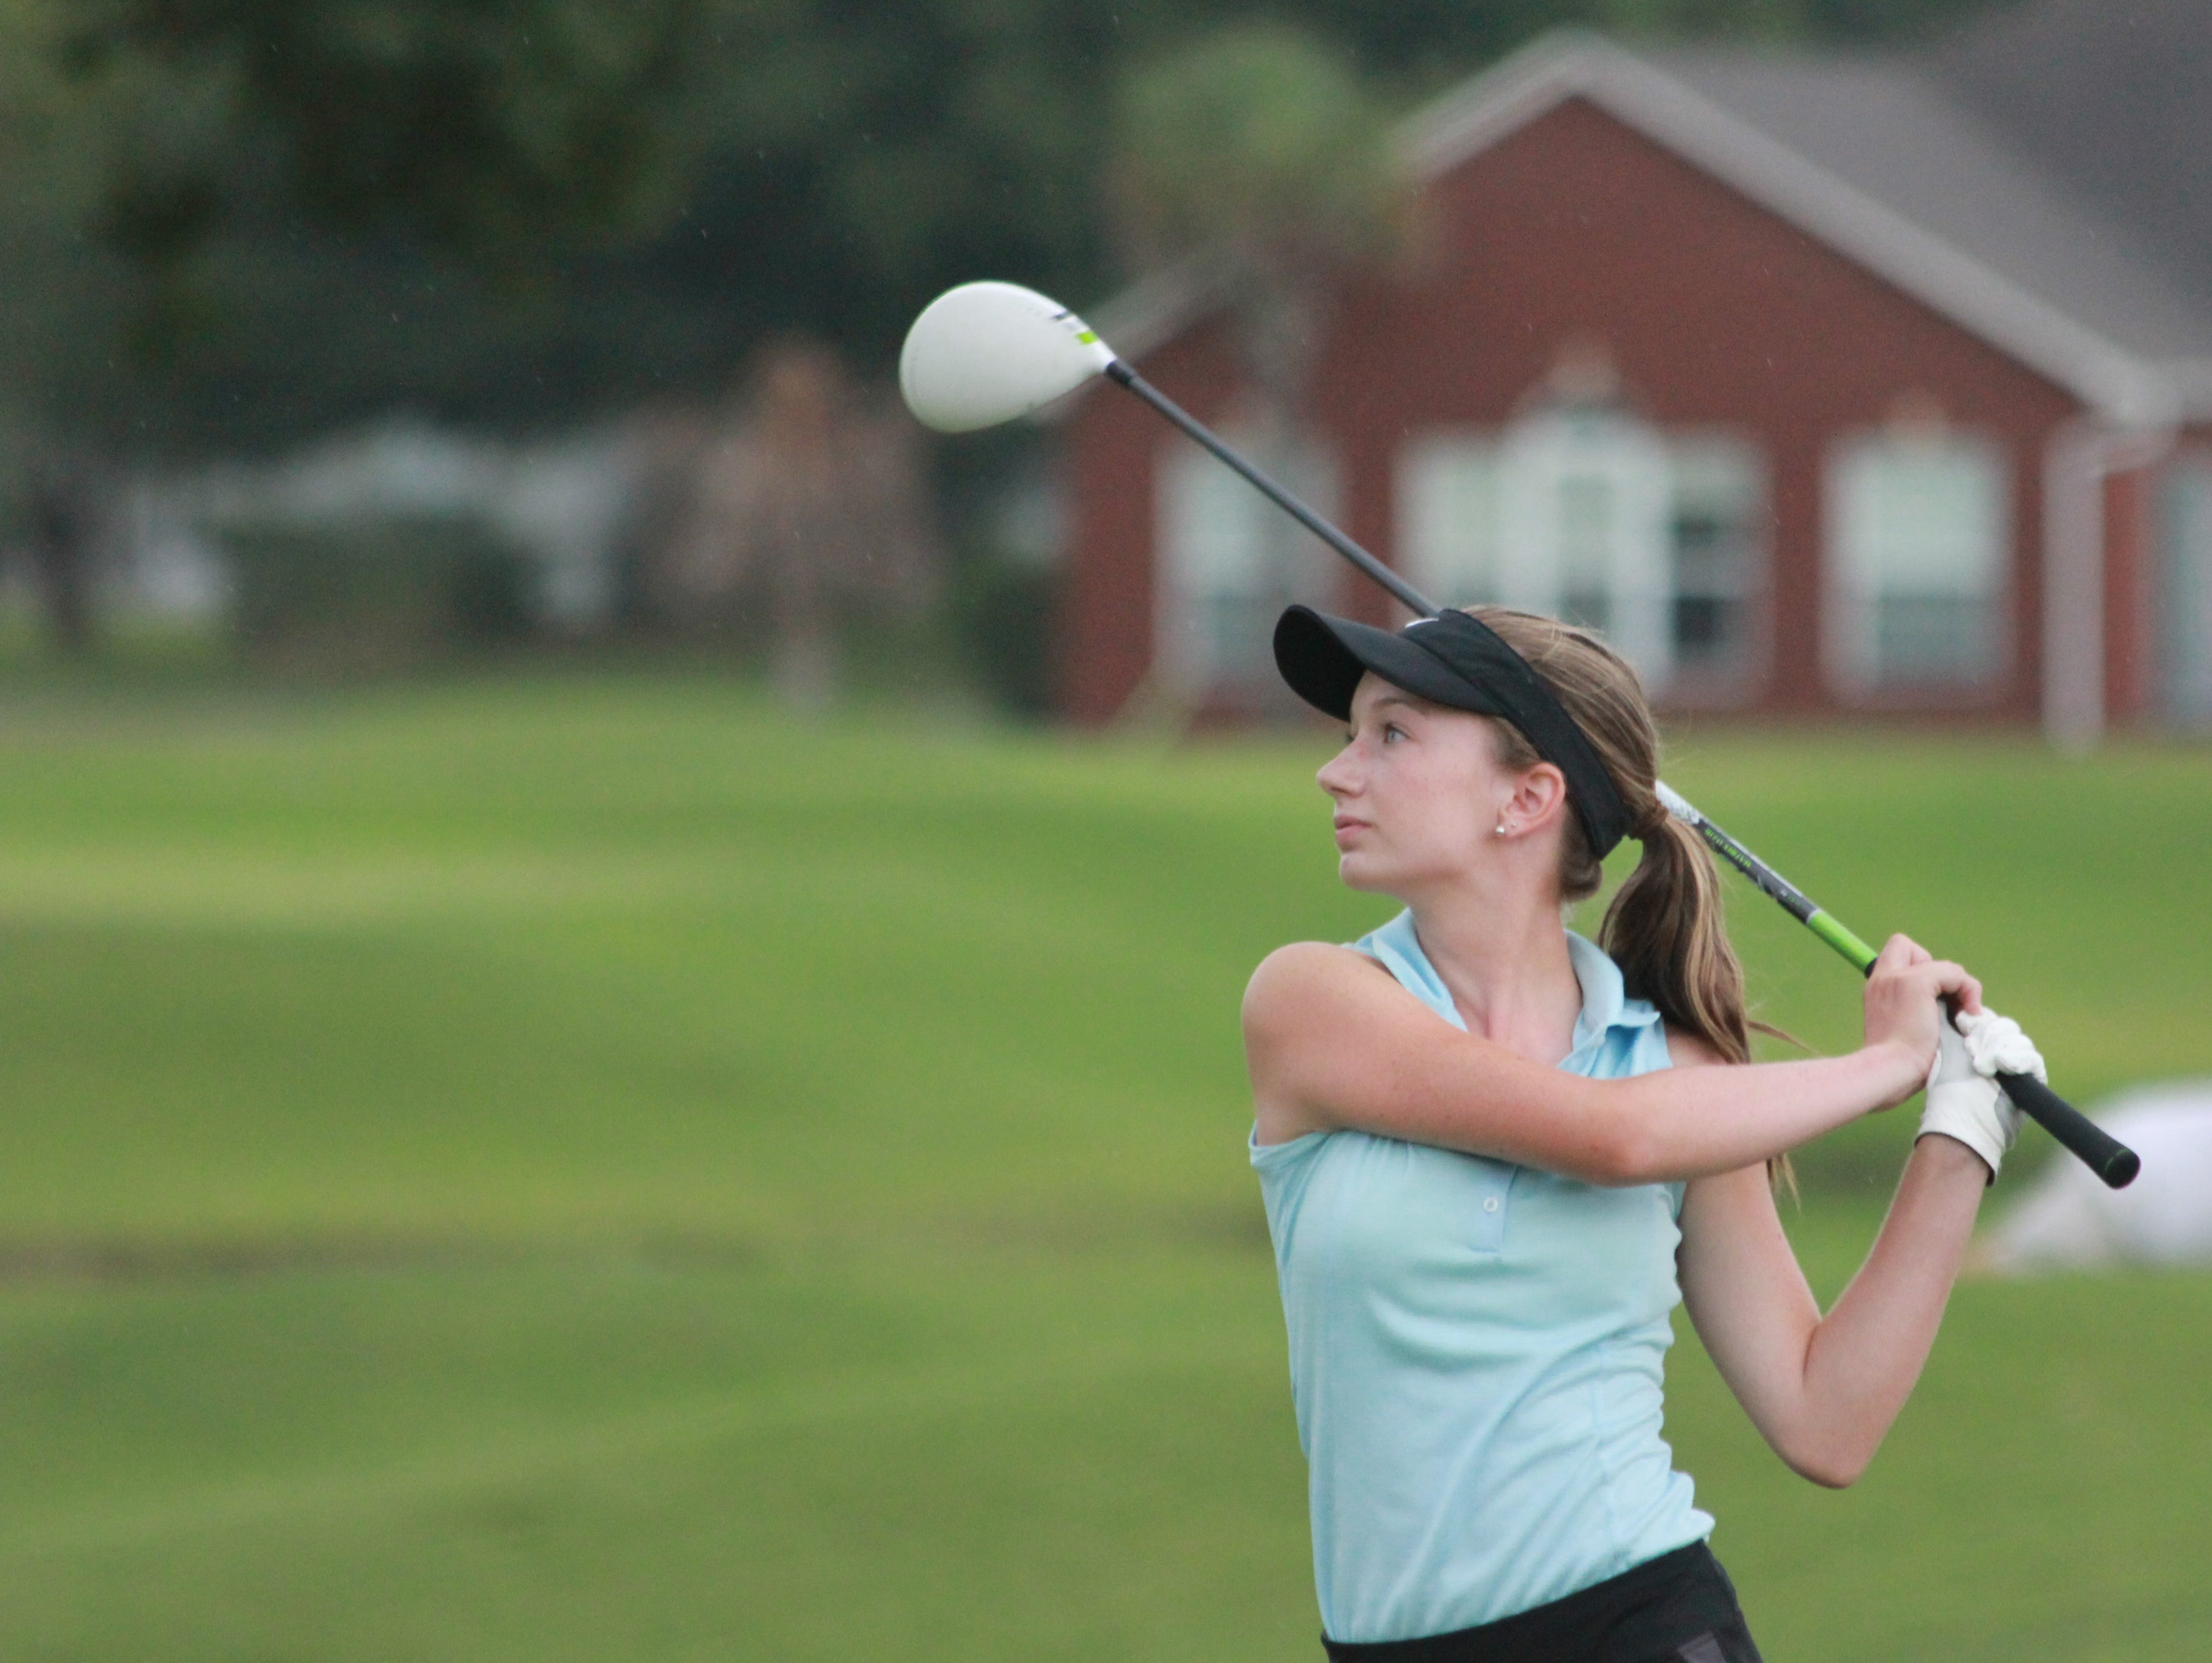 Catholic High senior Madelyn Dimitroff was one of 81 players nationally chosen from First Tee programs to participate in the Nature Valley First Tee Open at Pebble Beach.